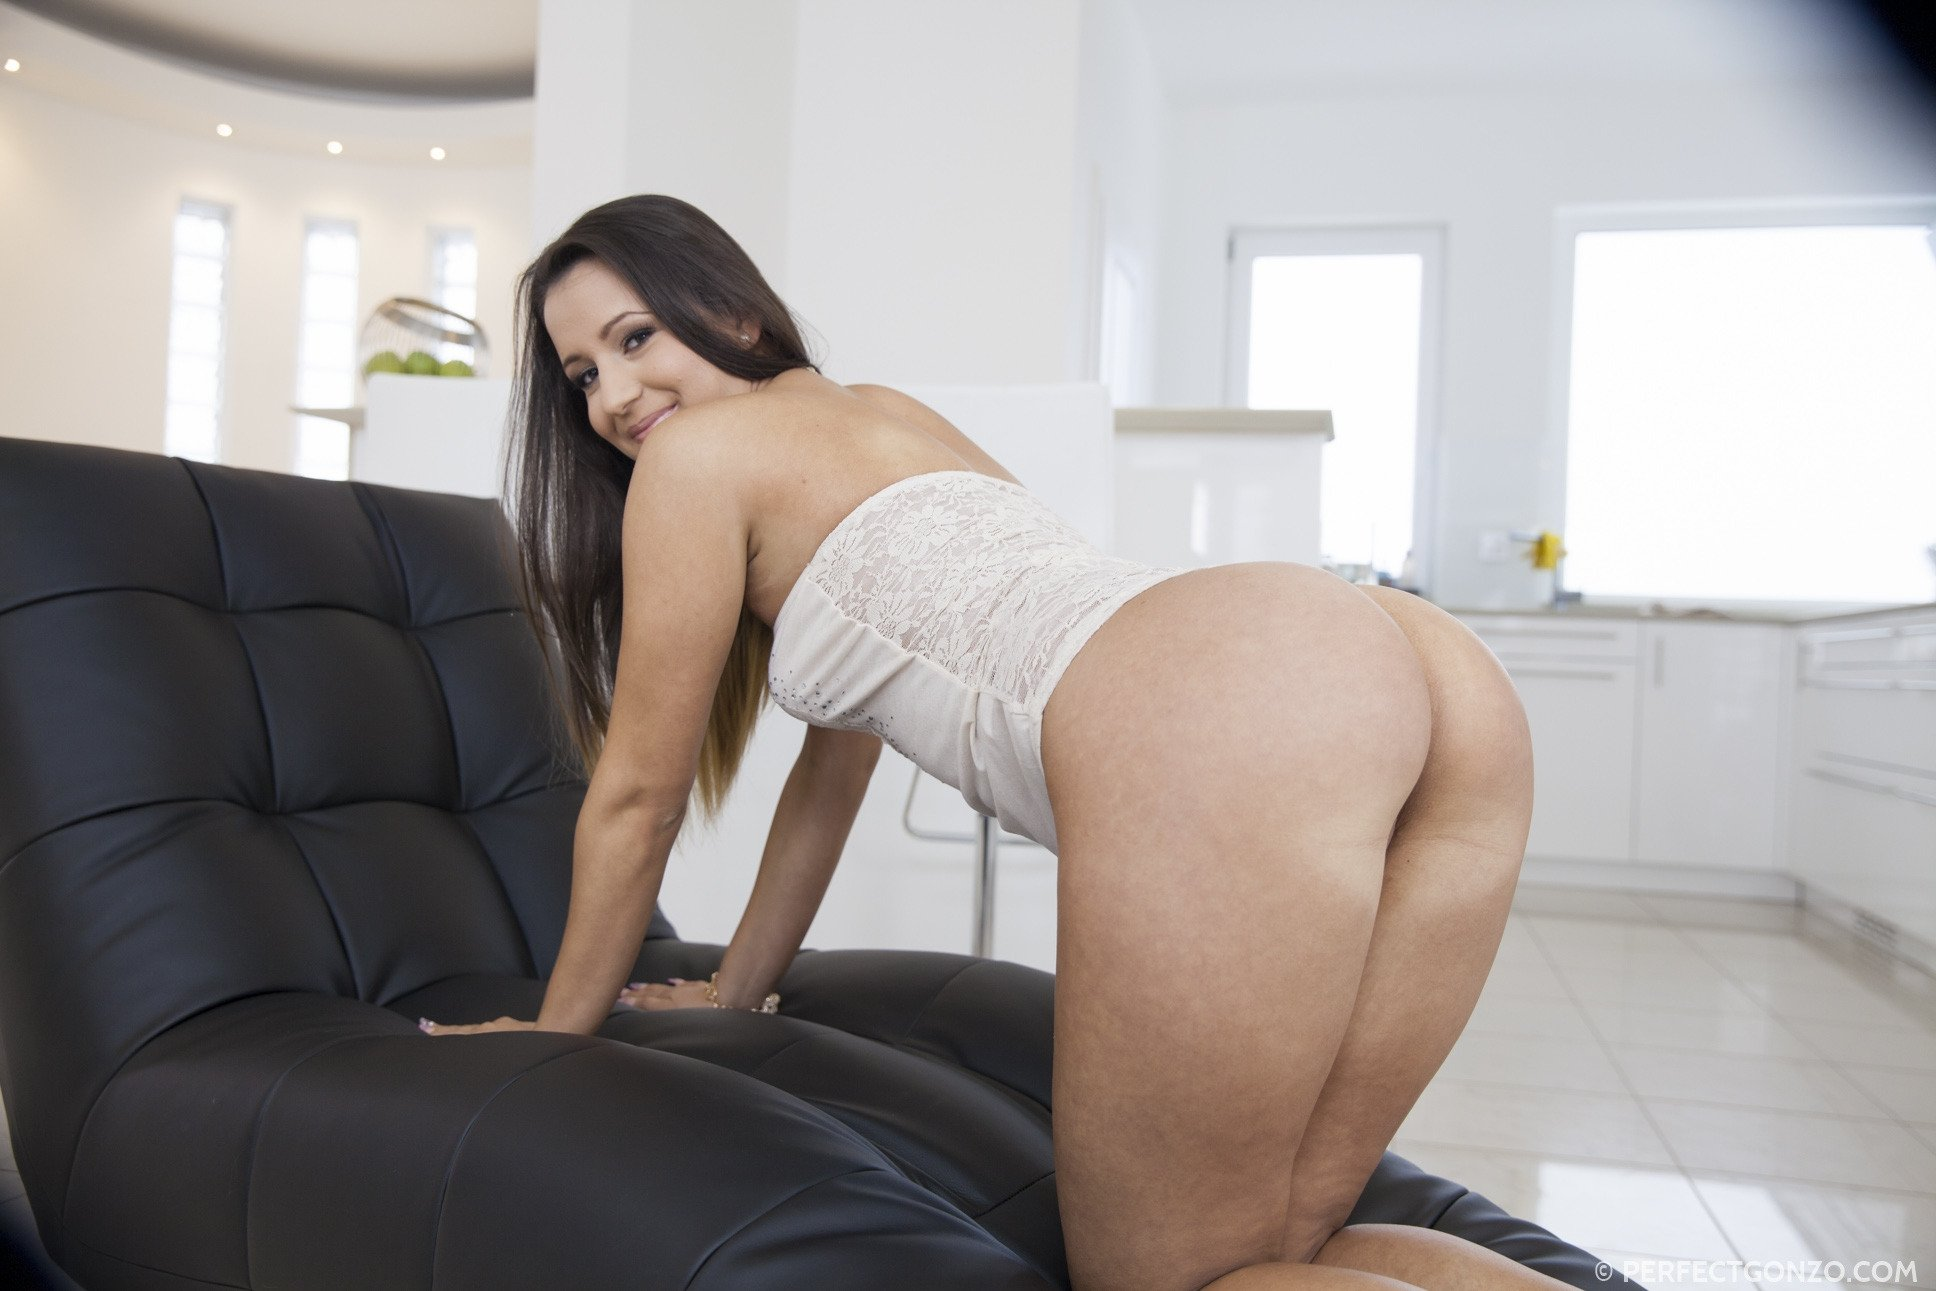 Husband wife sex clip free forced porn classic